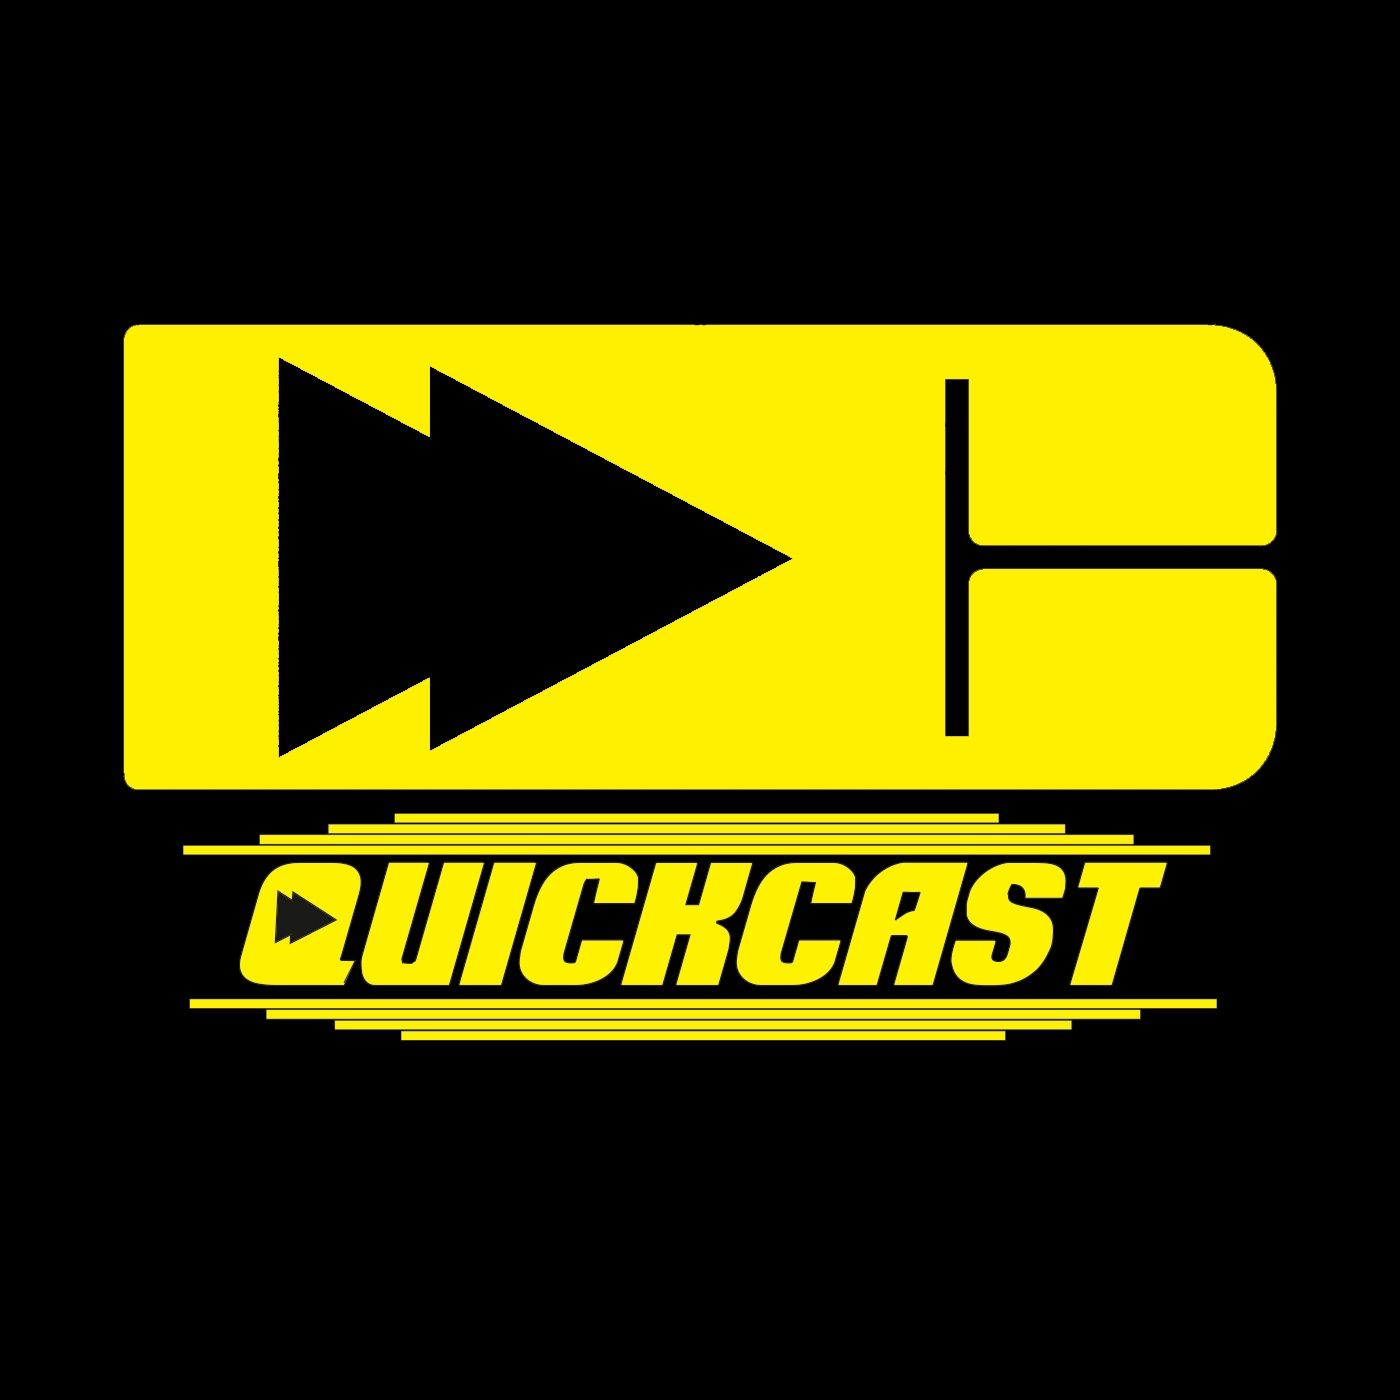 Quickcast: War Zone